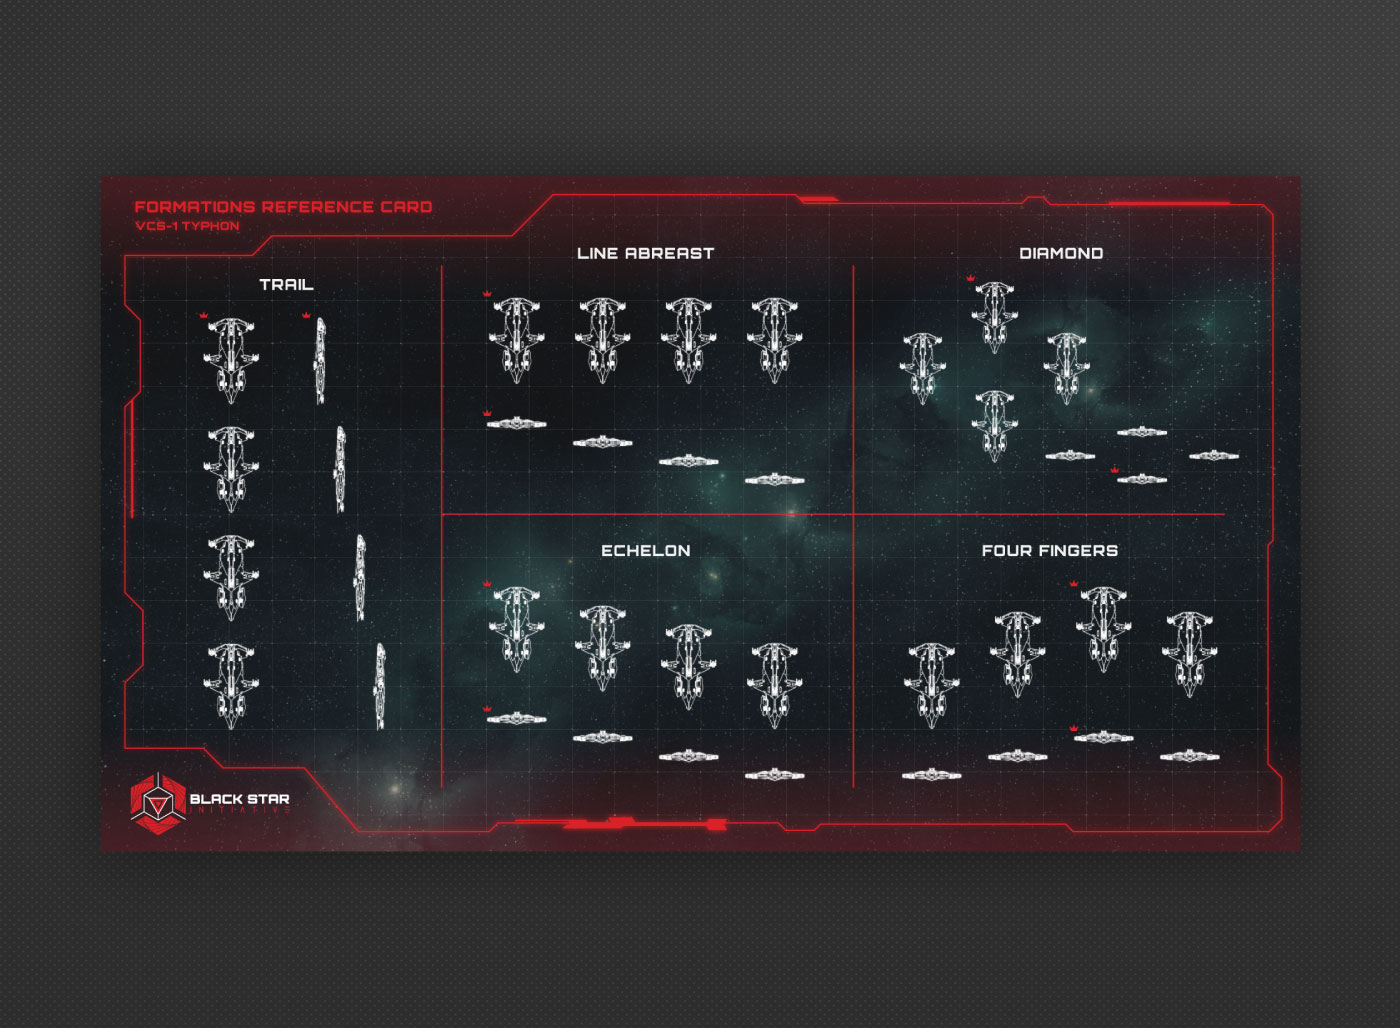 Visual of flying group formations reference card